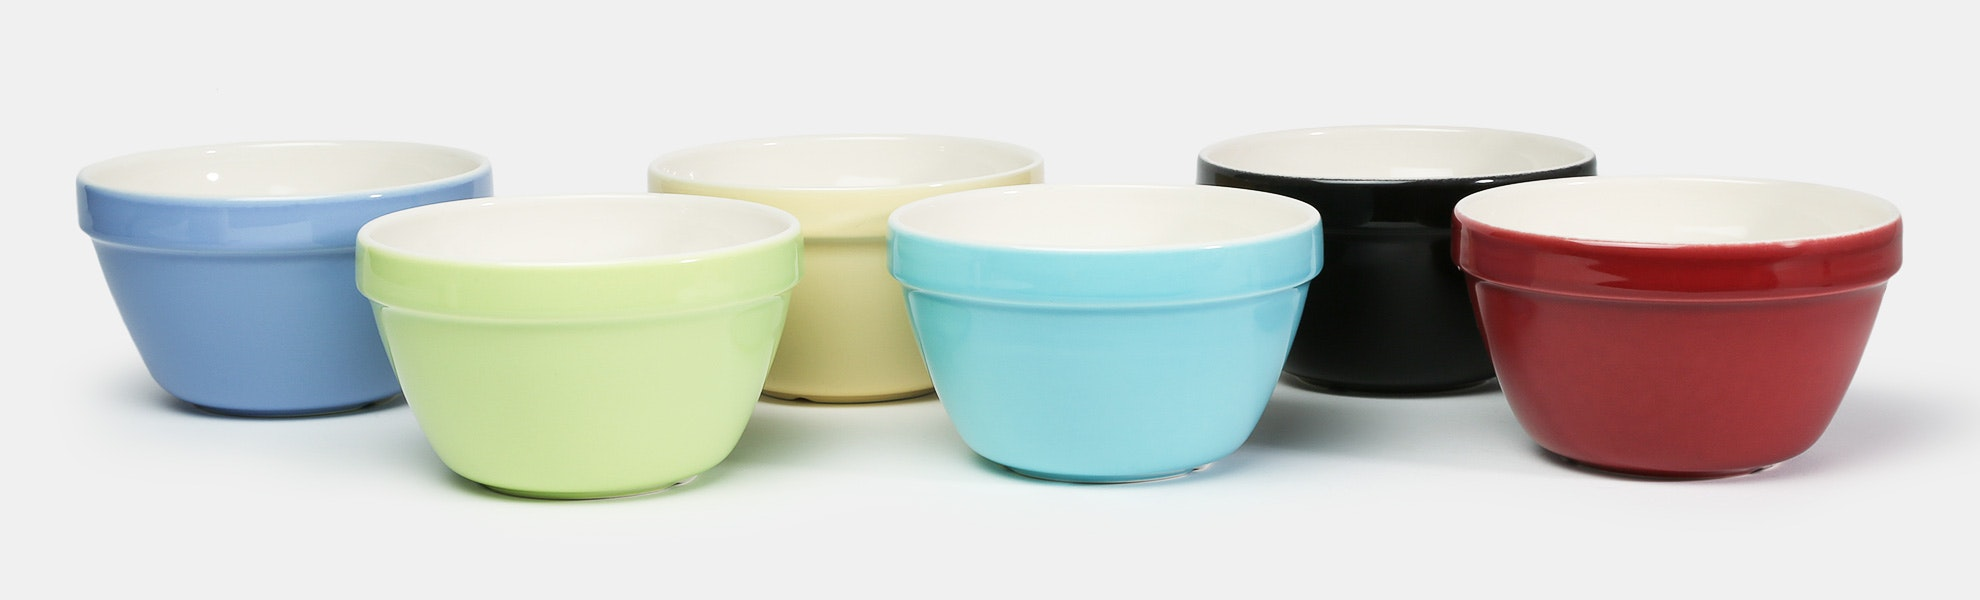 "Mason & Cash All-Purpose 6.25"" Bowls (Set of 6)"